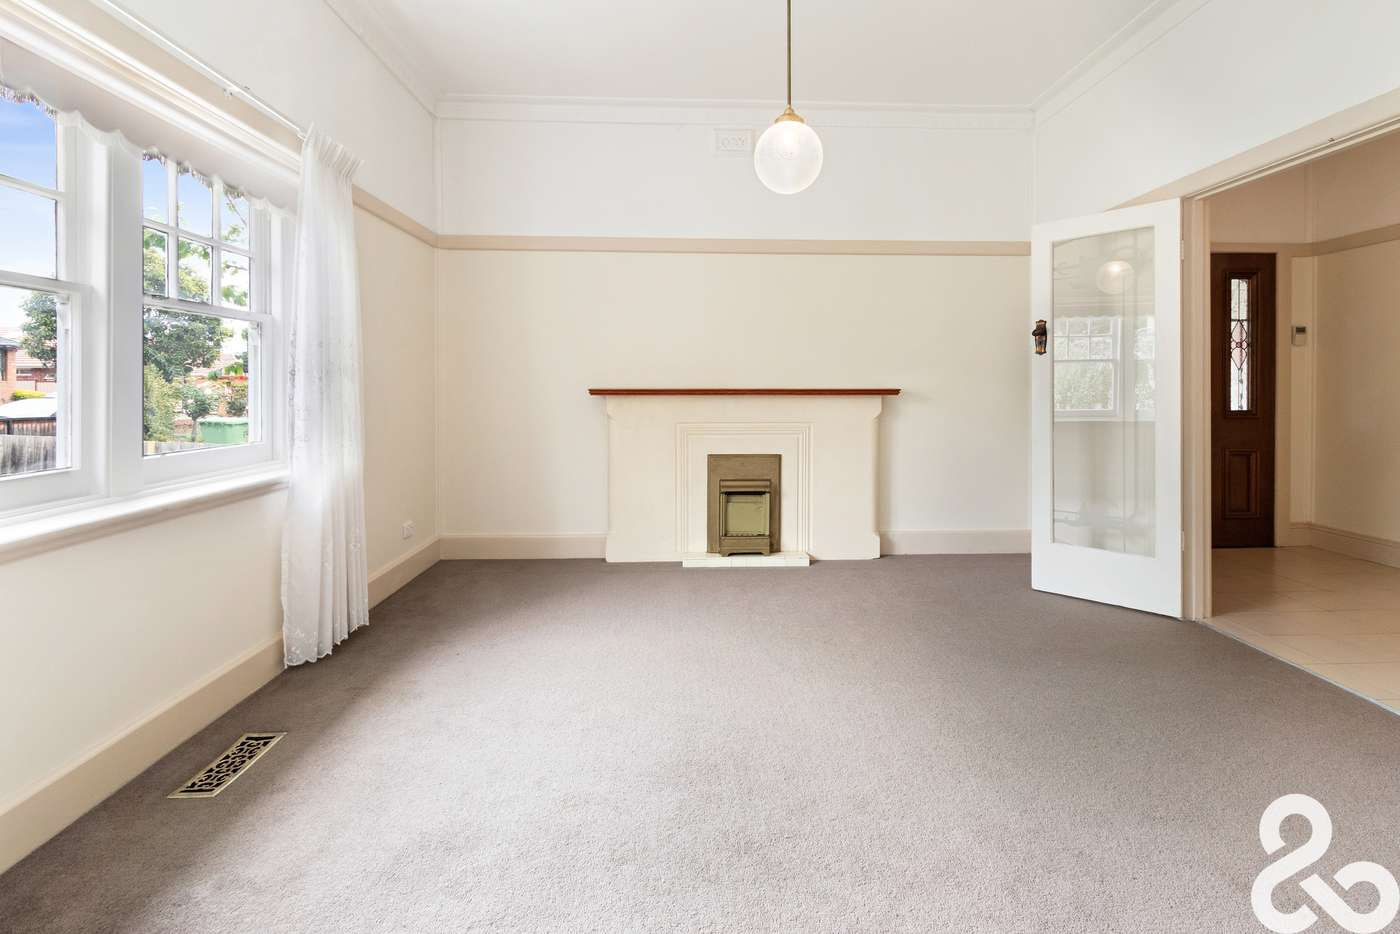 Sixth view of Homely house listing, 10 Howard Street, Reservoir VIC 3073